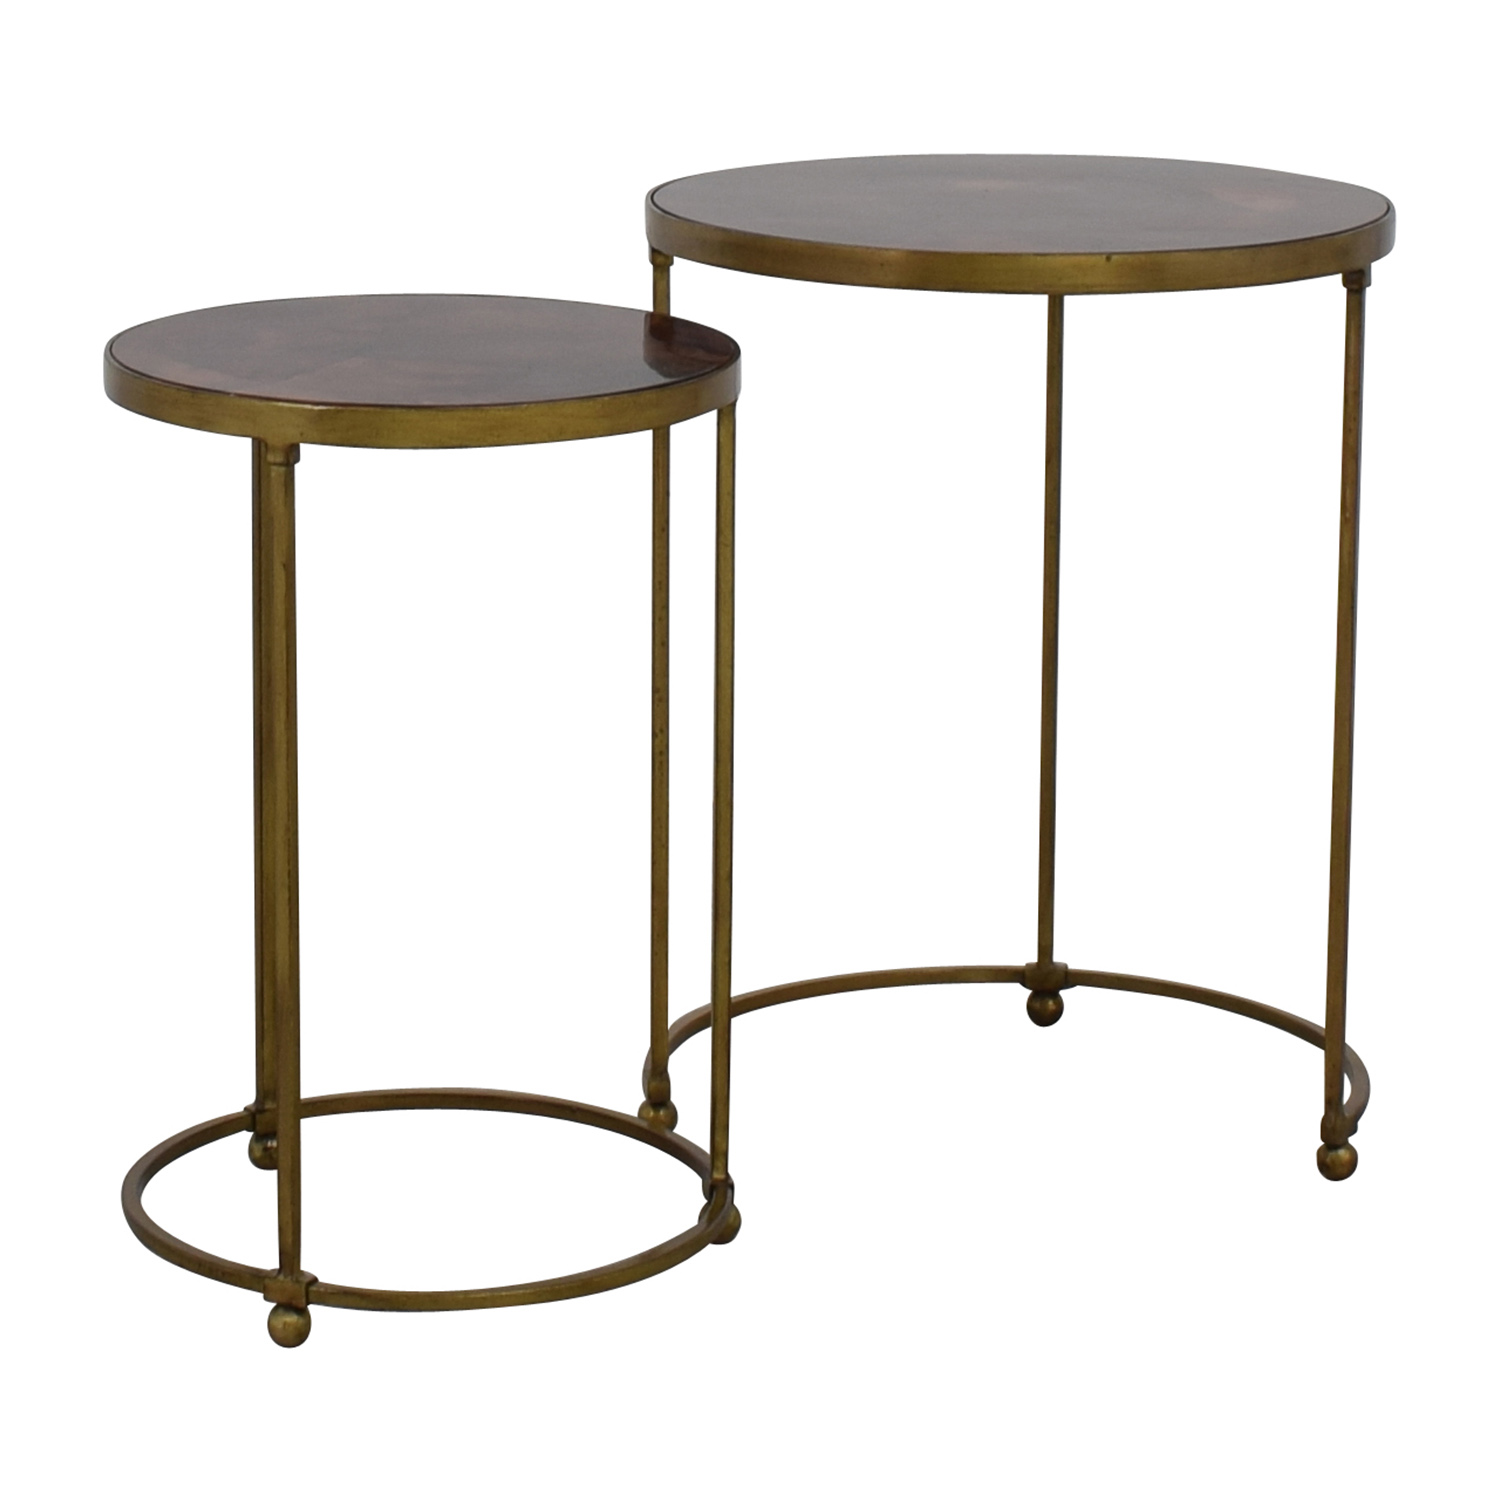 off carpet and home nesting round bronze brass accent tables table retro wooden chairs modern outdoor side foyer furniture pieces small black bedside vintage oriental lamps narrow